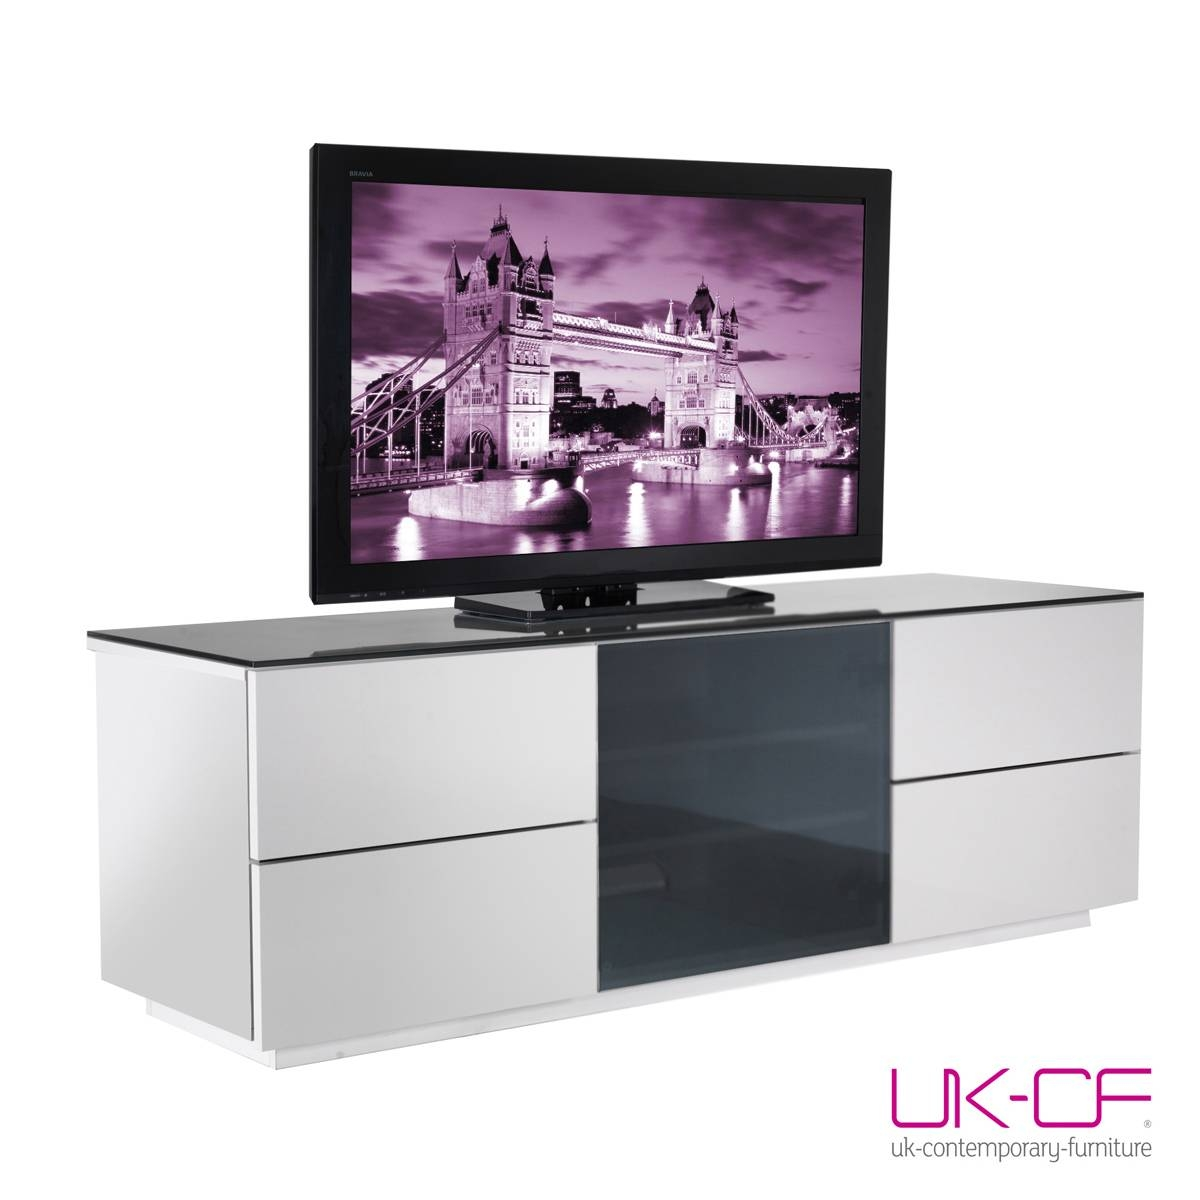 Ukcf London Designer High Gloss White Tv Stand With Black Glass pertaining to 150Cm Tv Unit (Image 9 of 15)